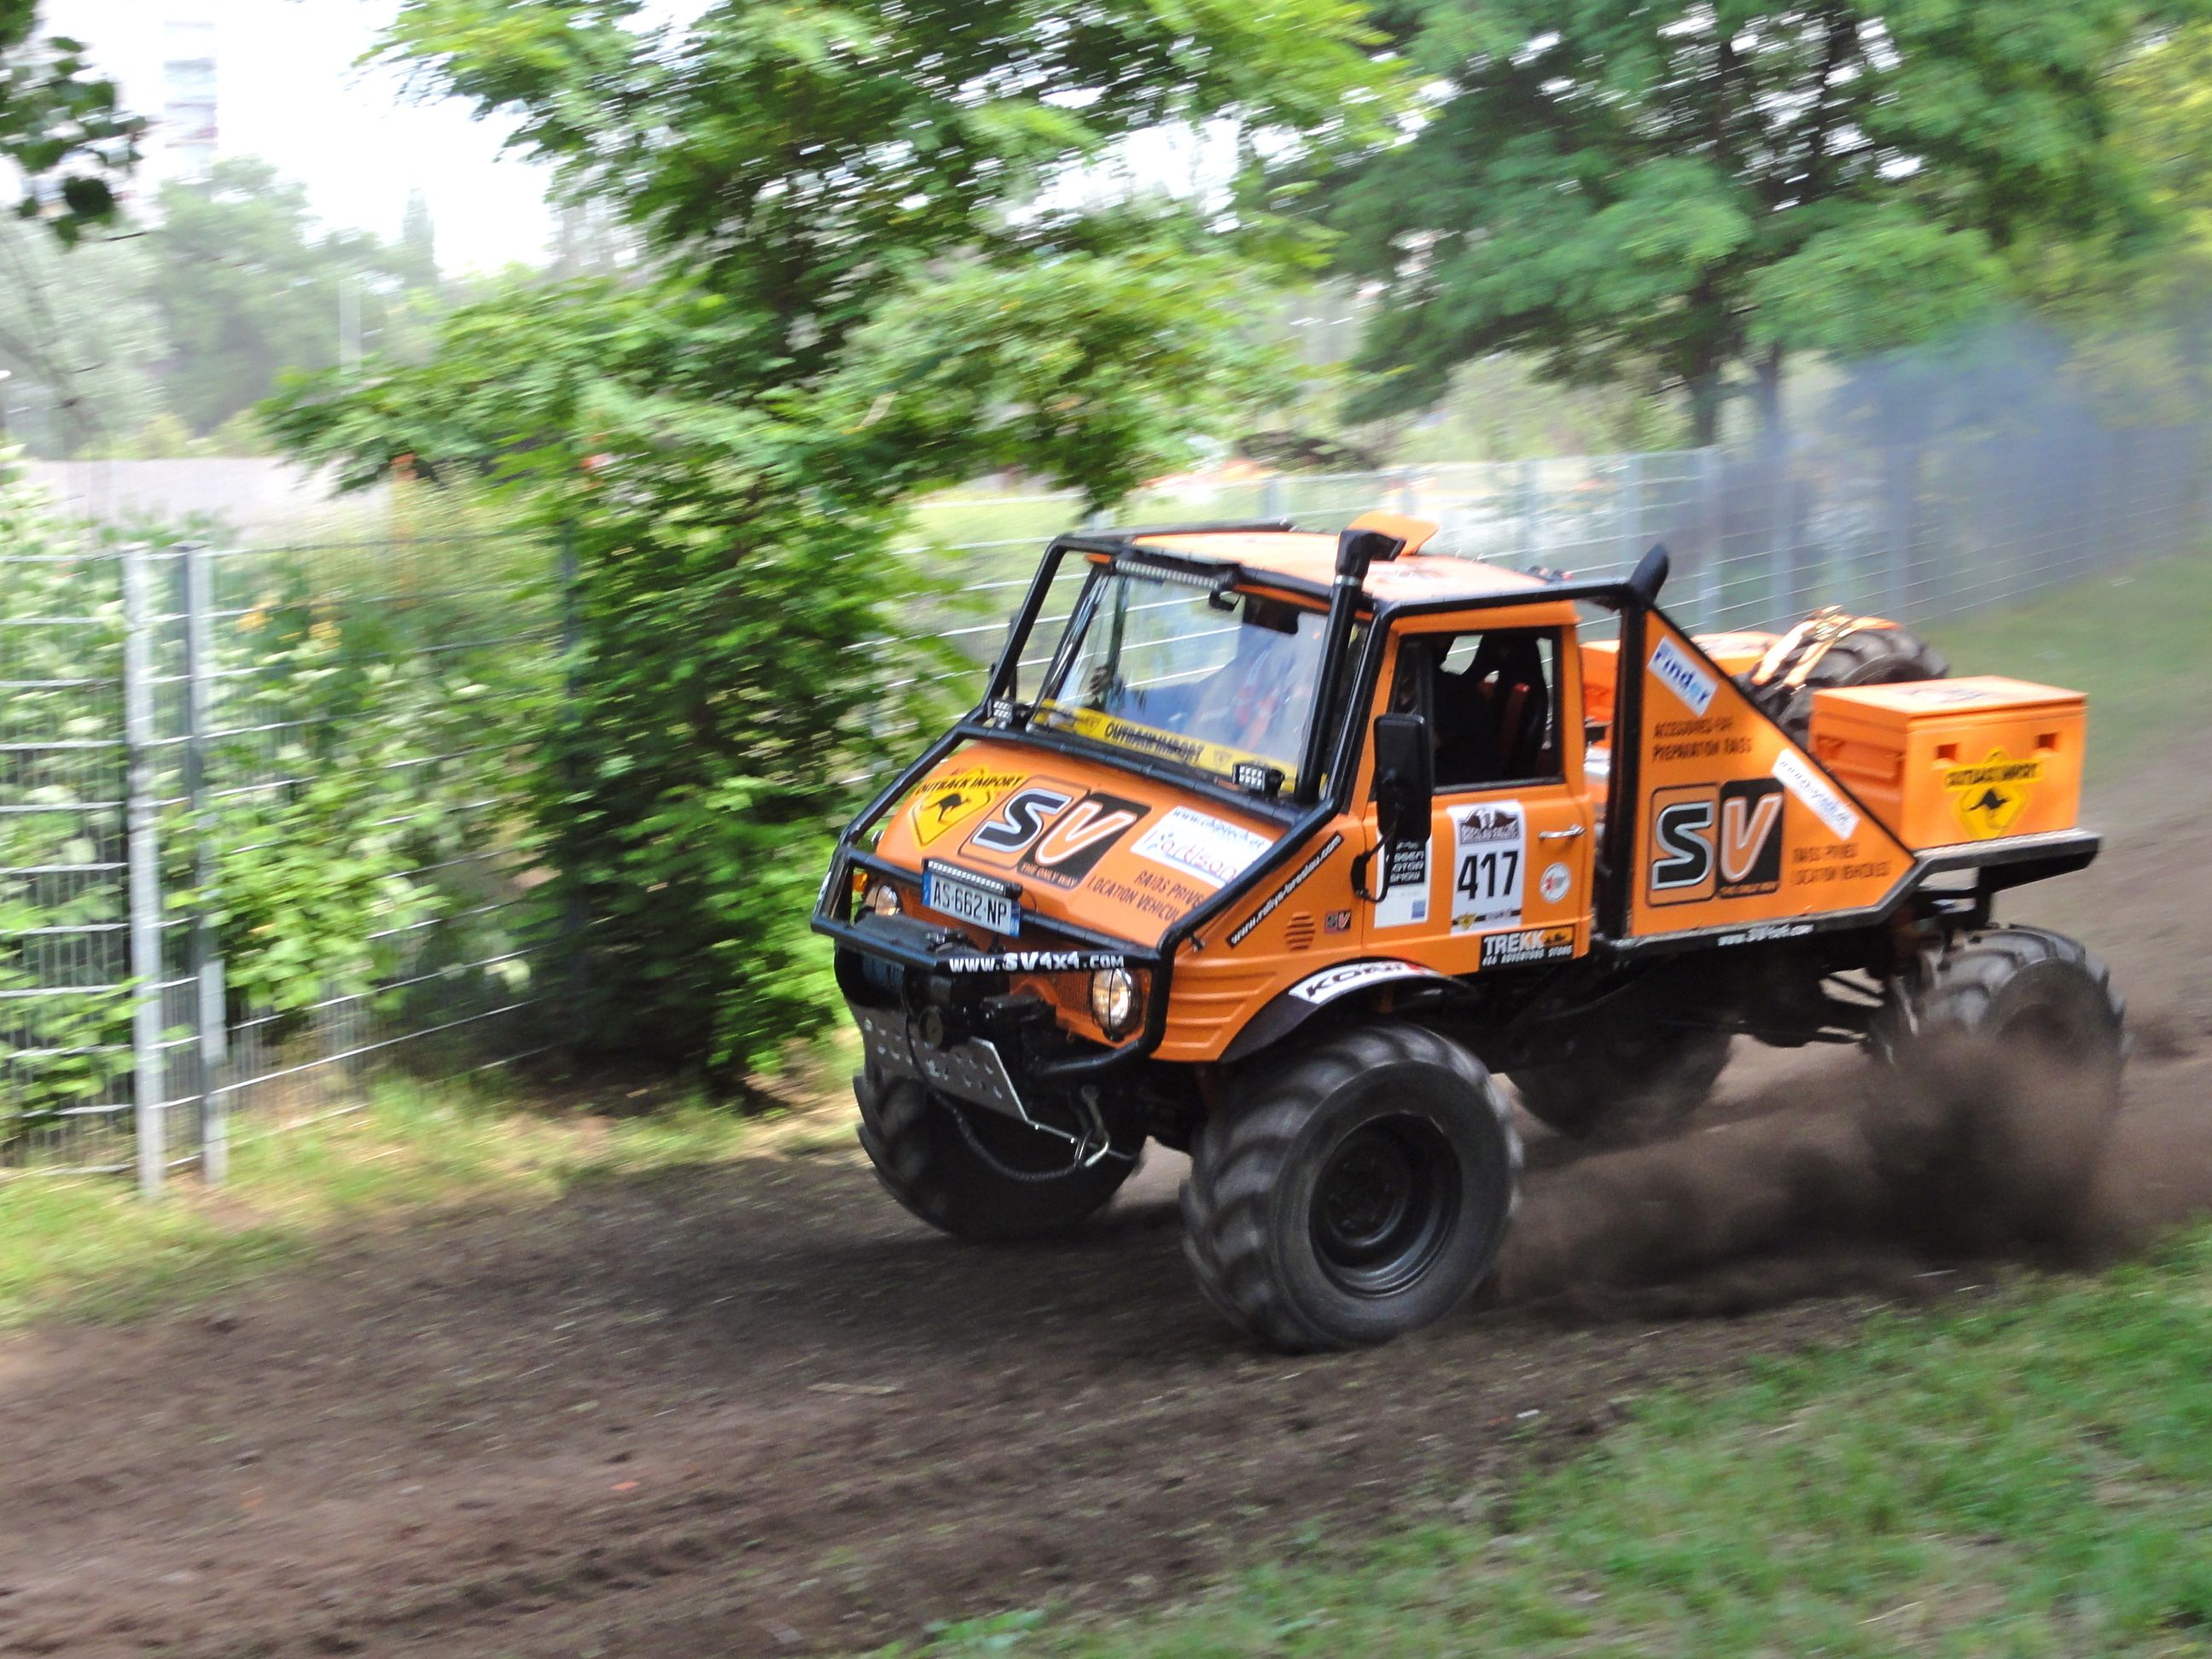 rc off road trucks 4x4 with 2011 on Real Sct In Action From Both Lucas Oil besides 2011 further Watch in addition Watch further Watch.